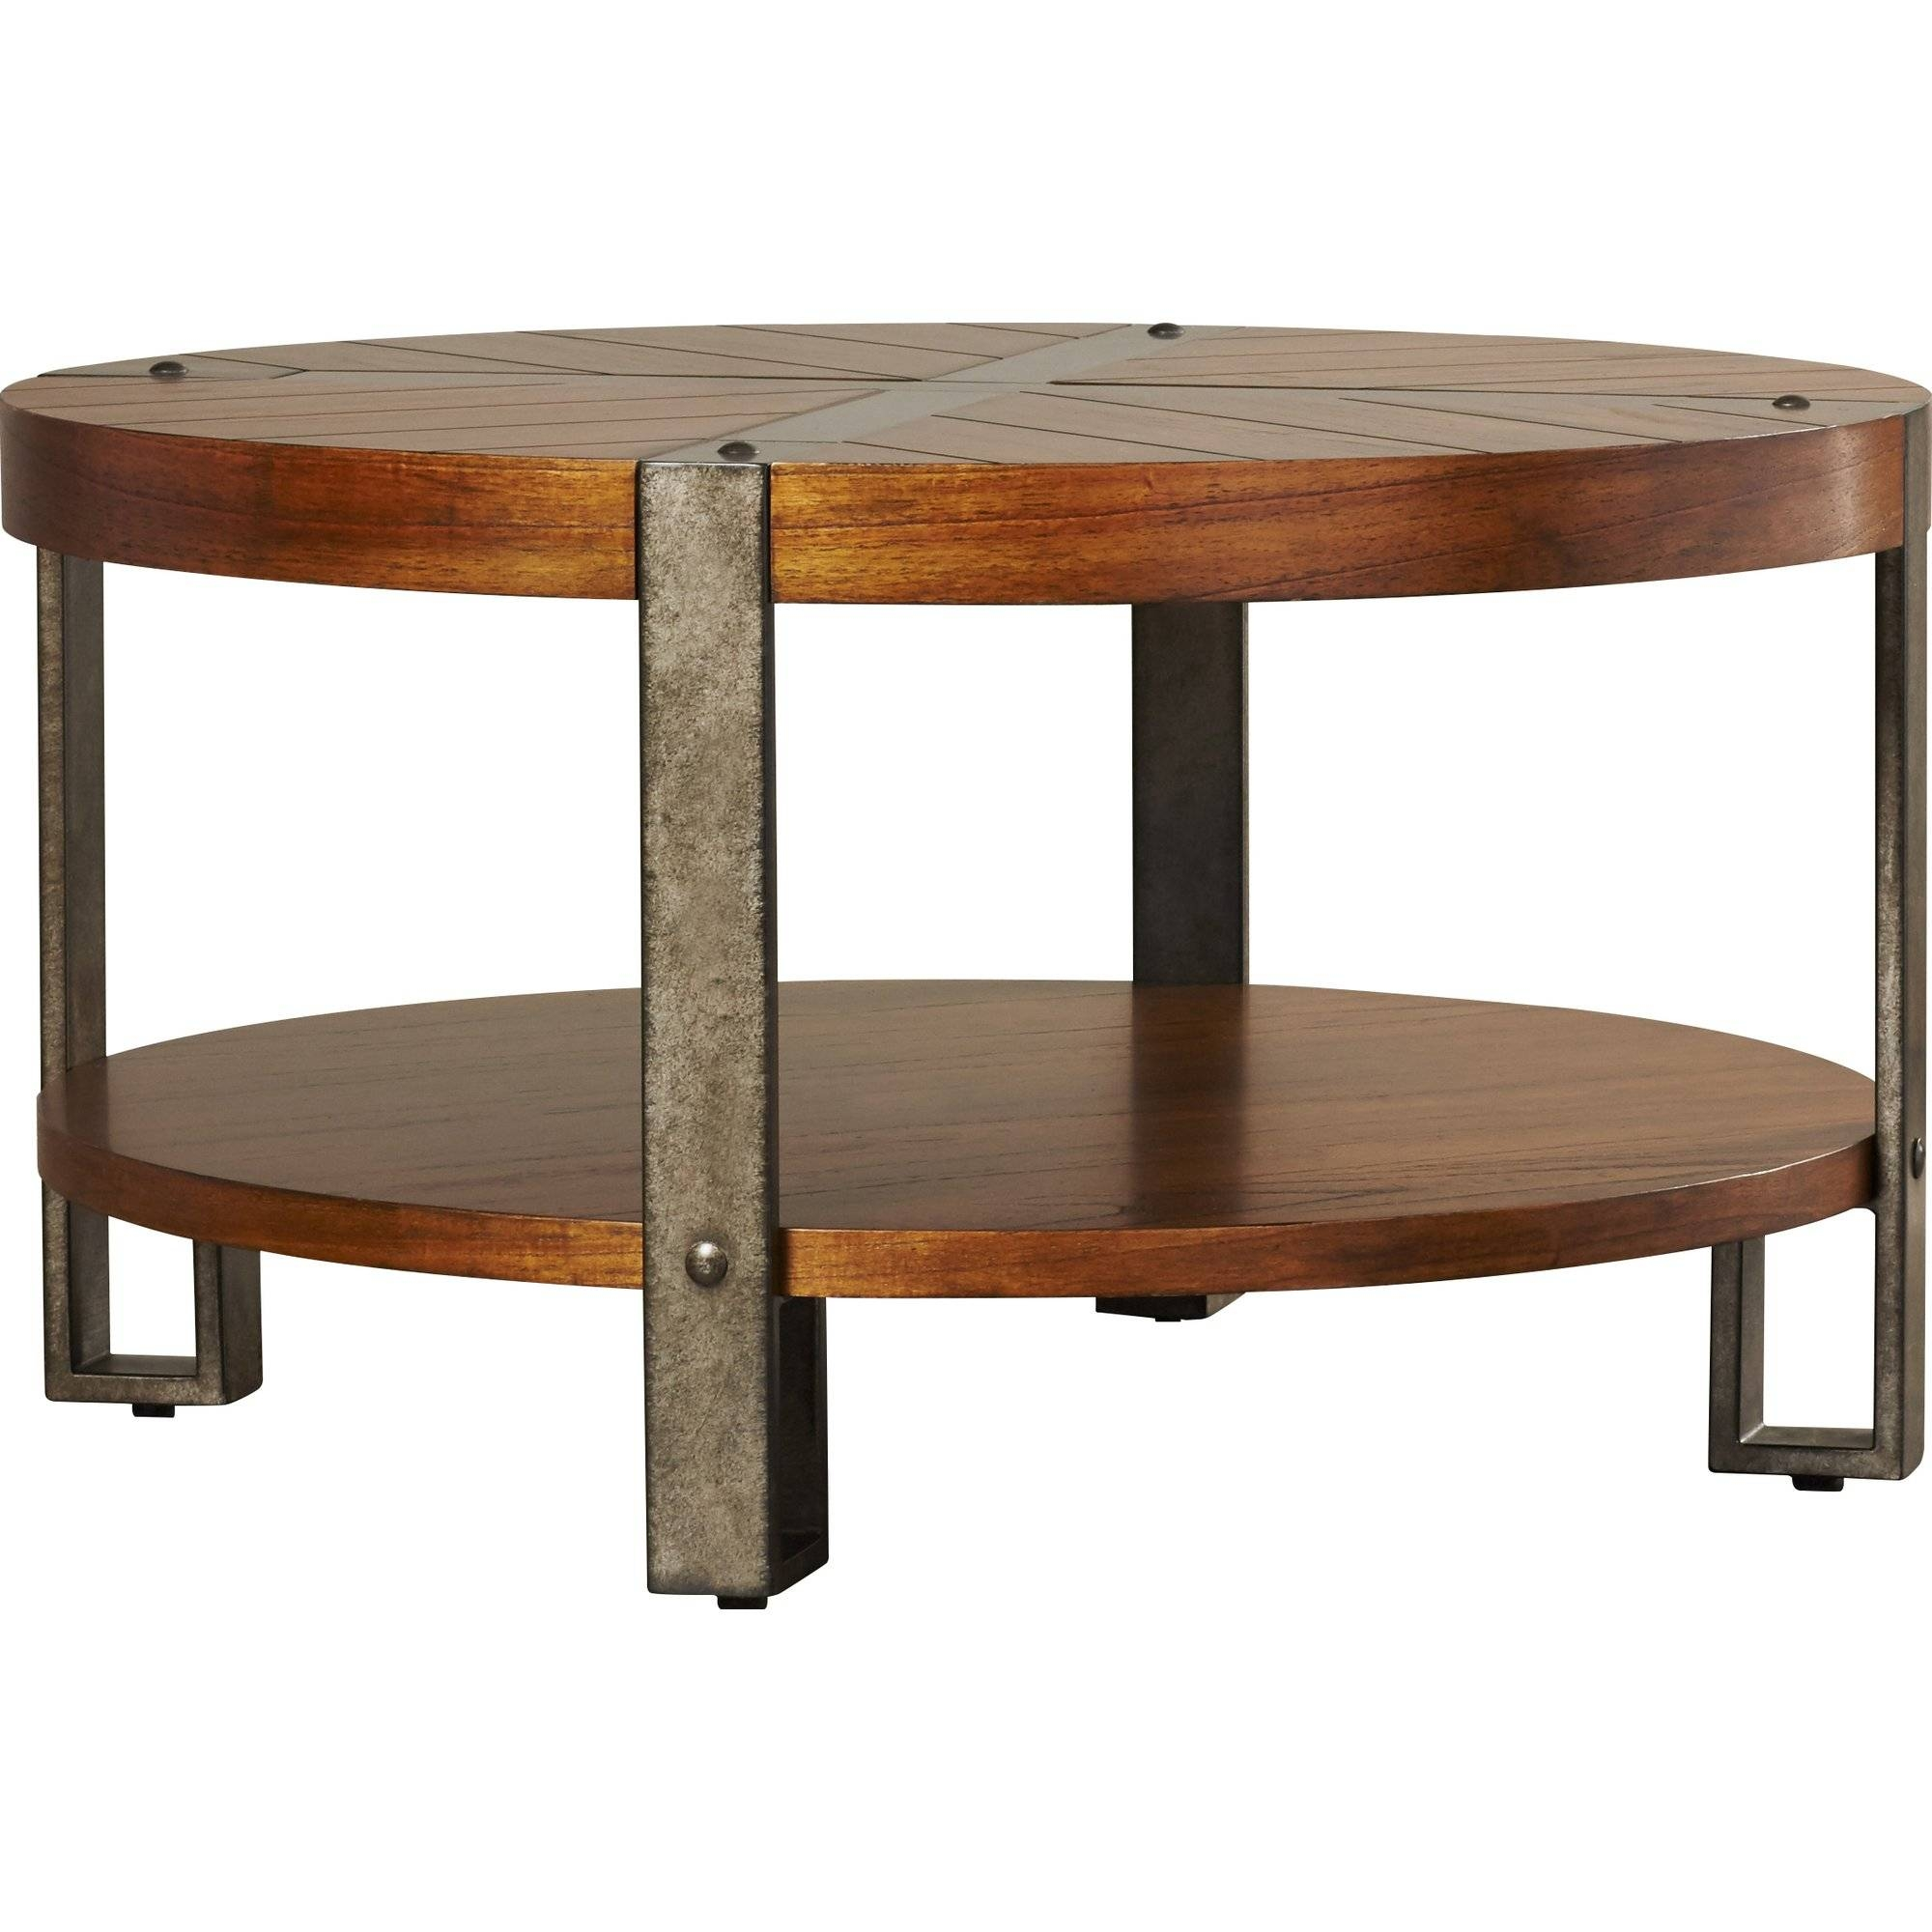 Half Circle Tv Stand with Half Circle Coffee Tables (Image 18 of 30)